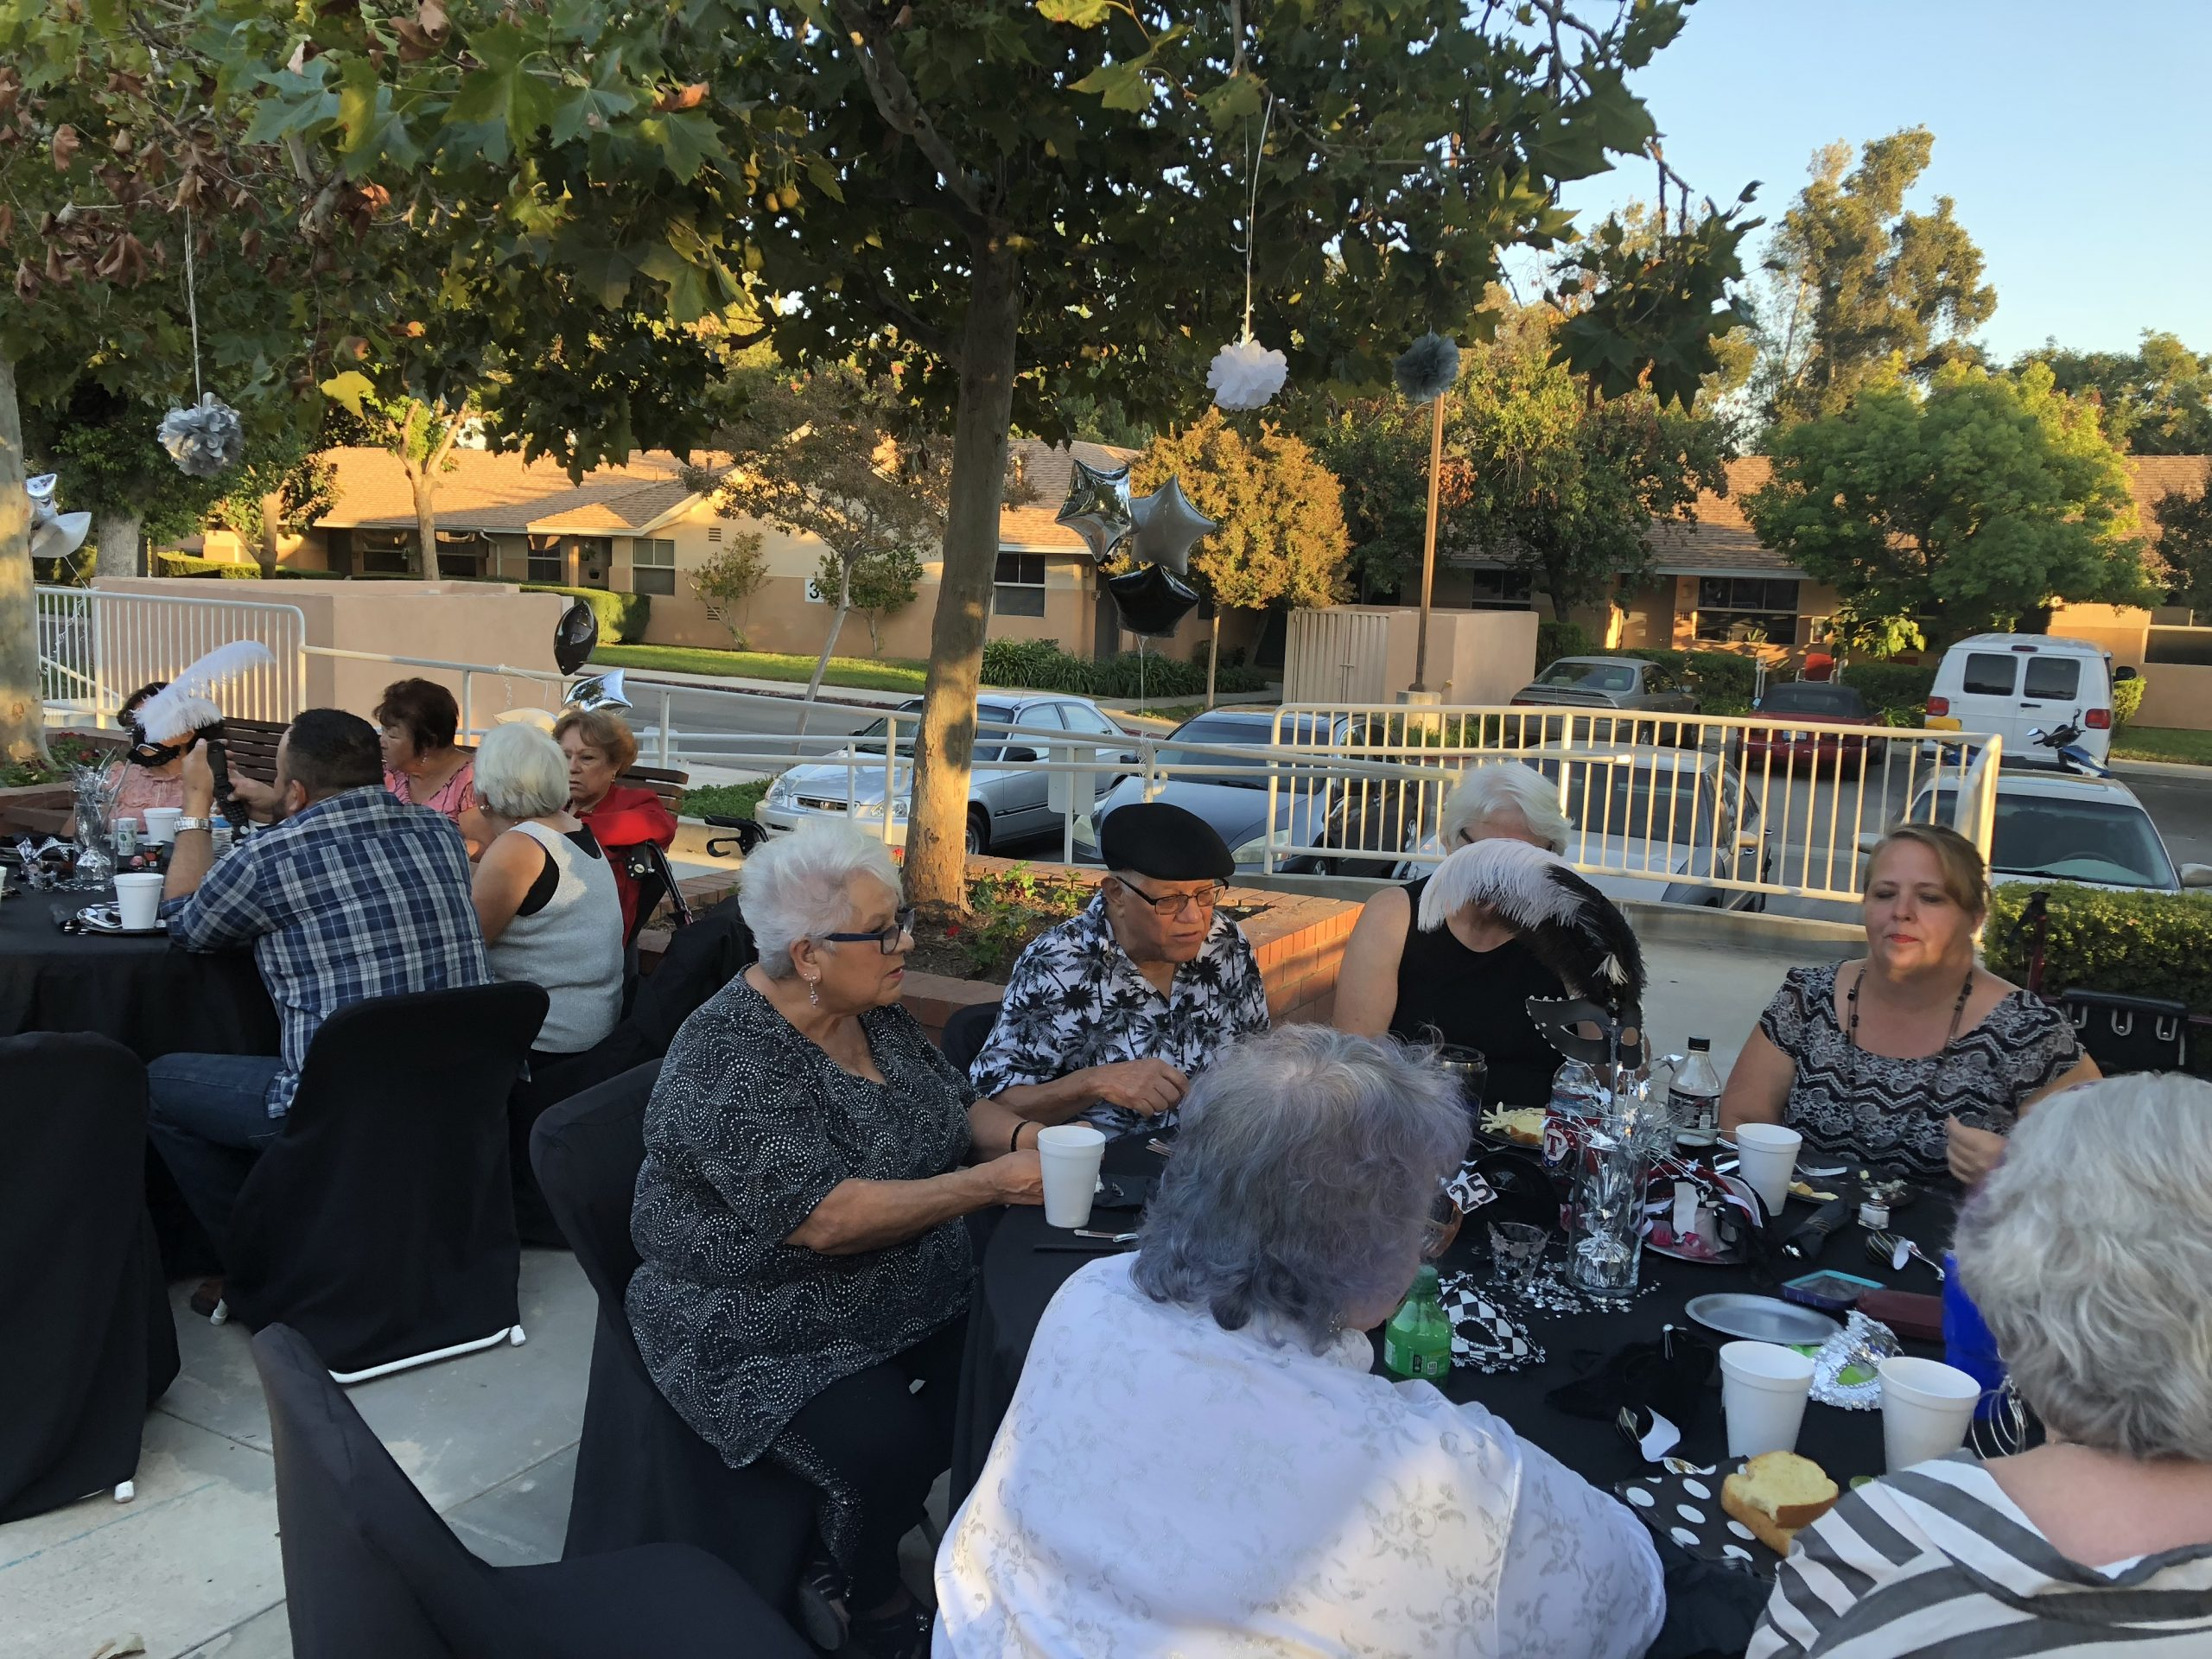 Photo of residents and family sitting outside at an event at Cambridge Gardens senior housing community.